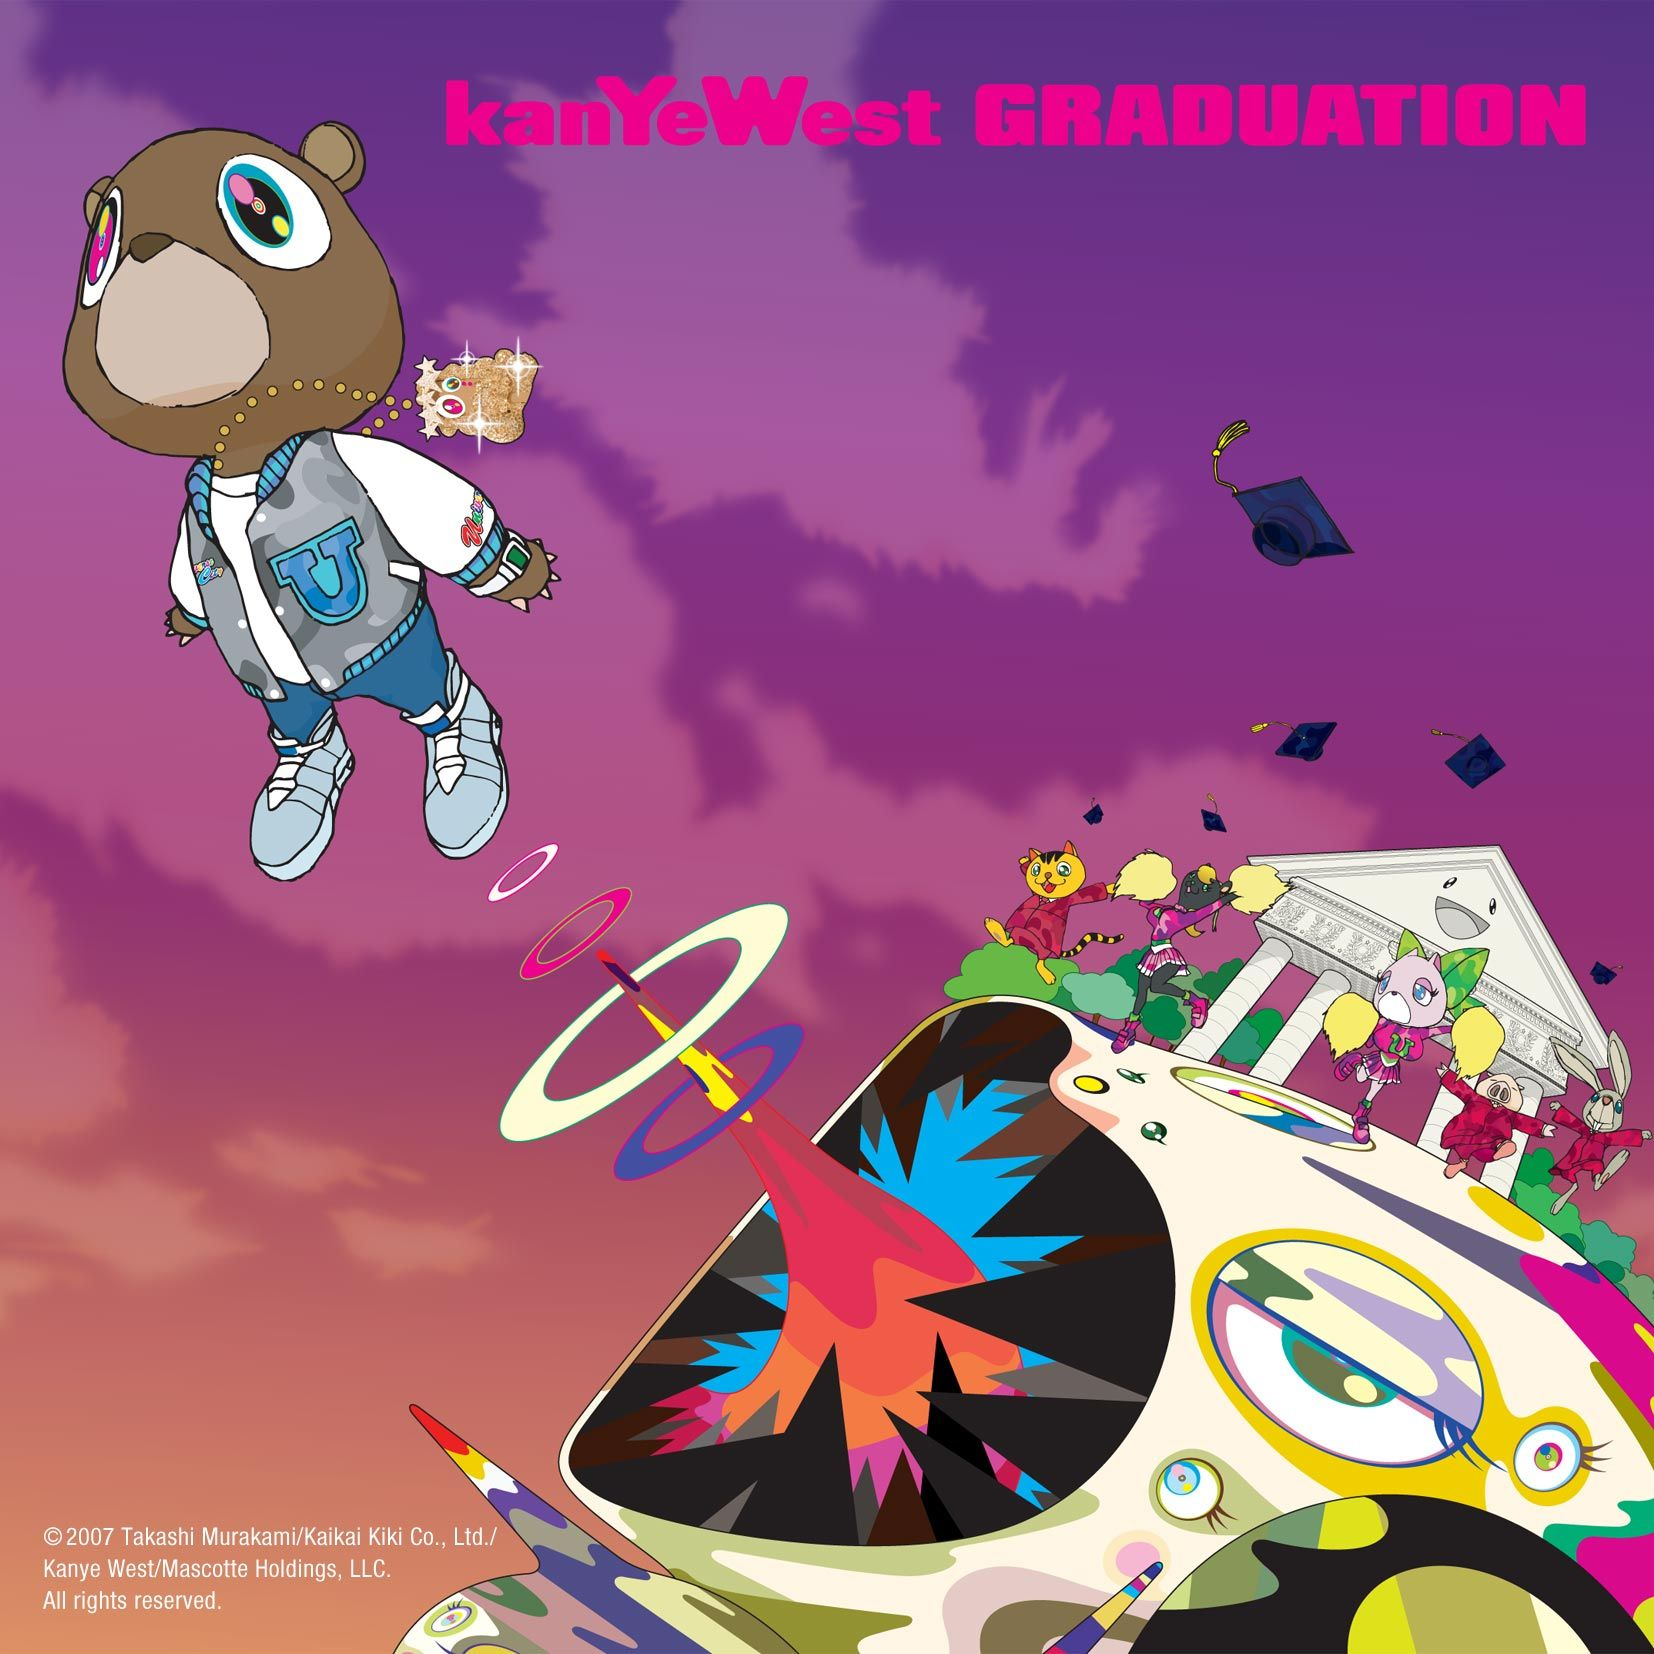 High Res Graduation Artwork Pic Kanye West Forum Kanye West Album Cover Graduation Album Rap Album Covers